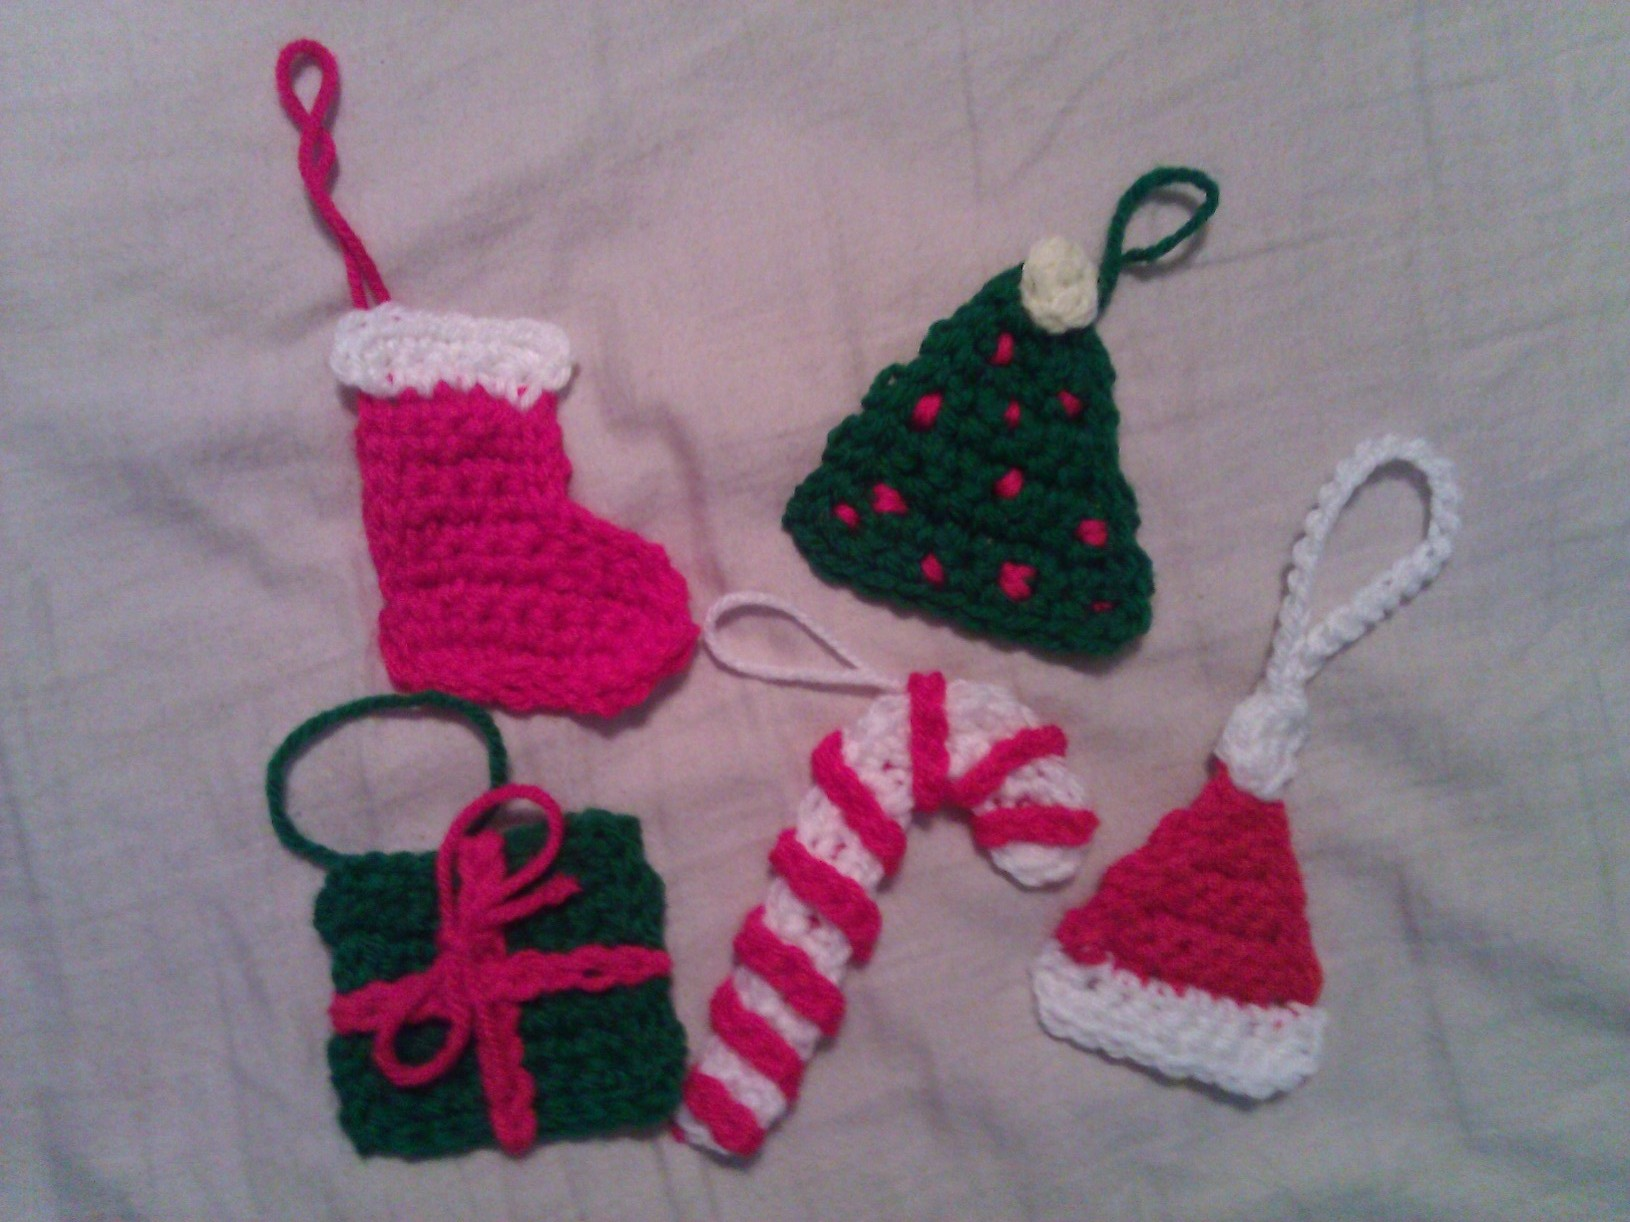 Crochet Patterns Xmas : Cane Christmas Ornament Crochet Pattern ? cRAfterchick - Free Crochet ...